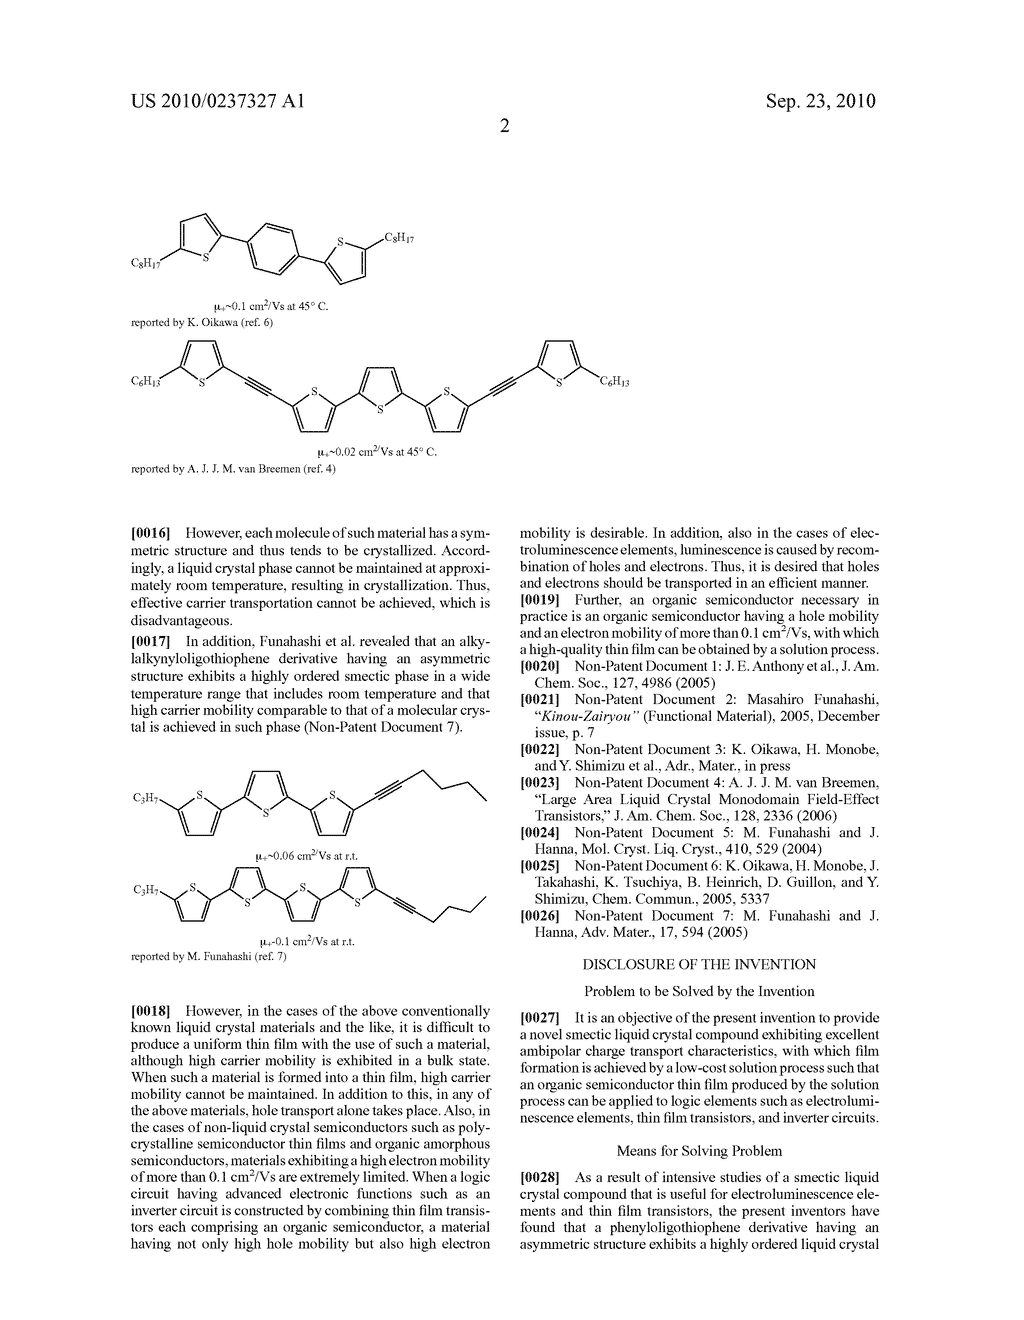 SMECTIC LIQUID CRYSTAL COMPOUND - diagram, schematic, and image 10